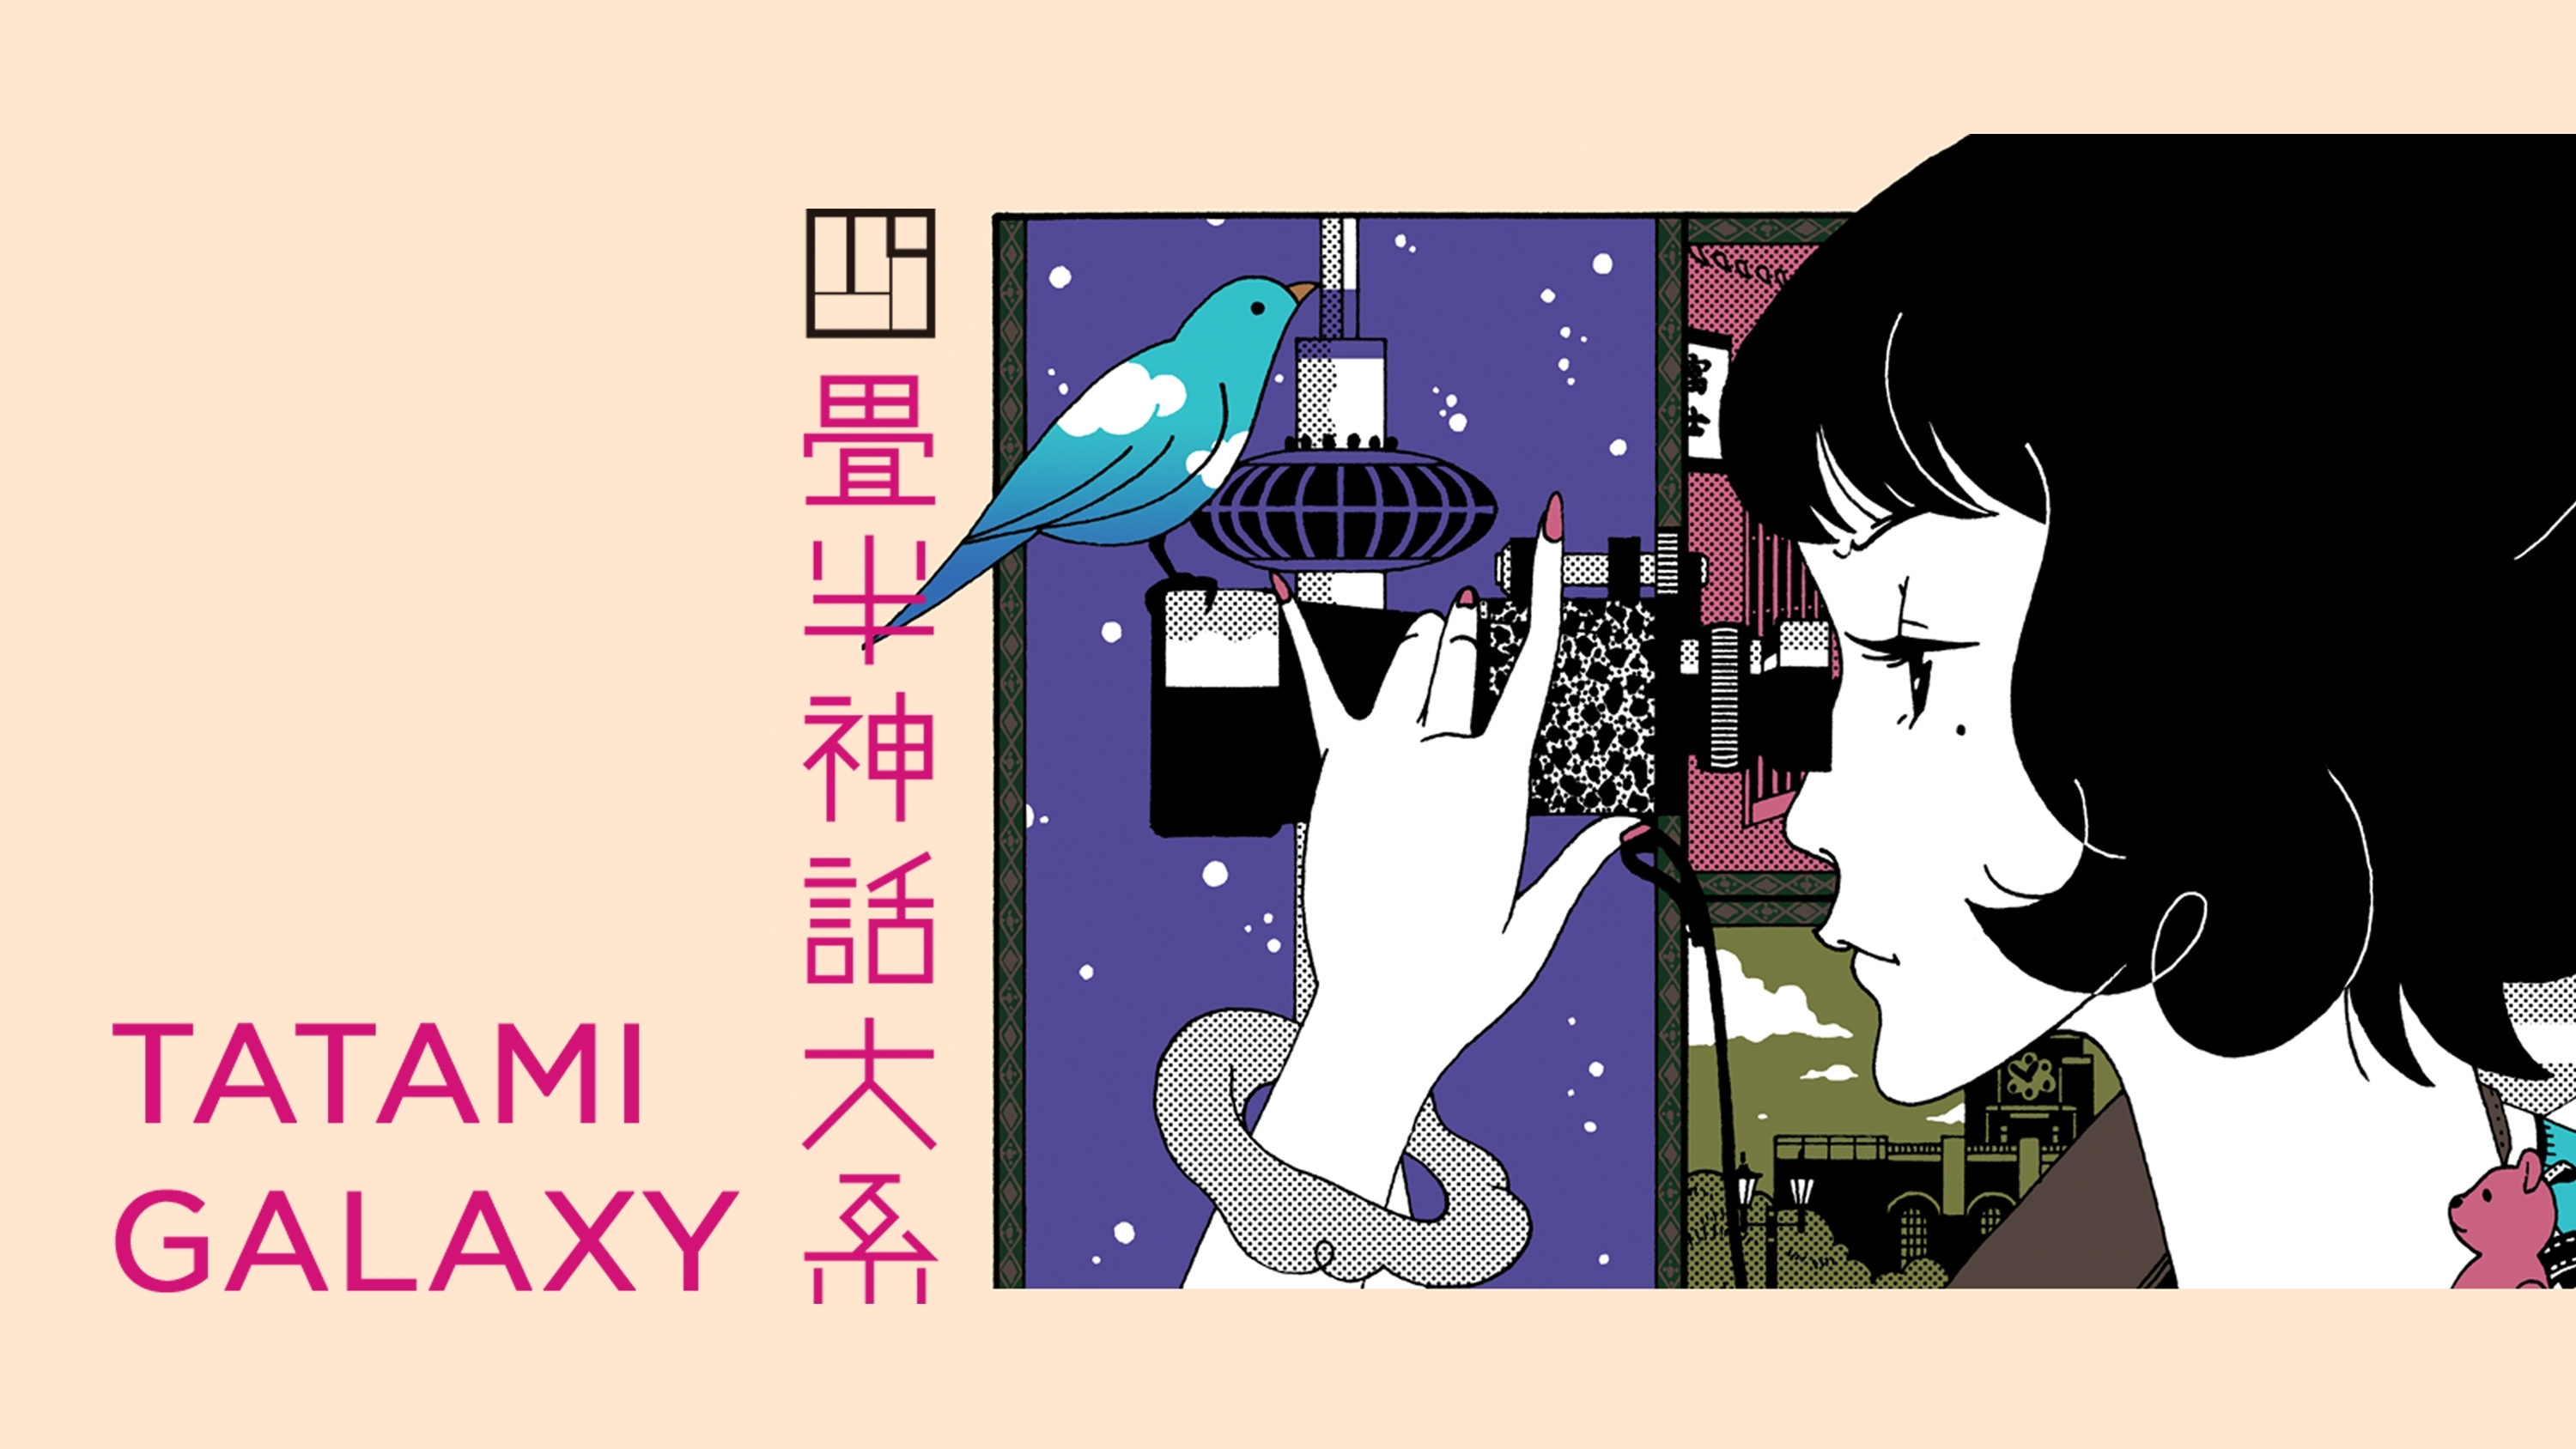 the tatami galaxy full hd wallpaper and background image | 3000x1688